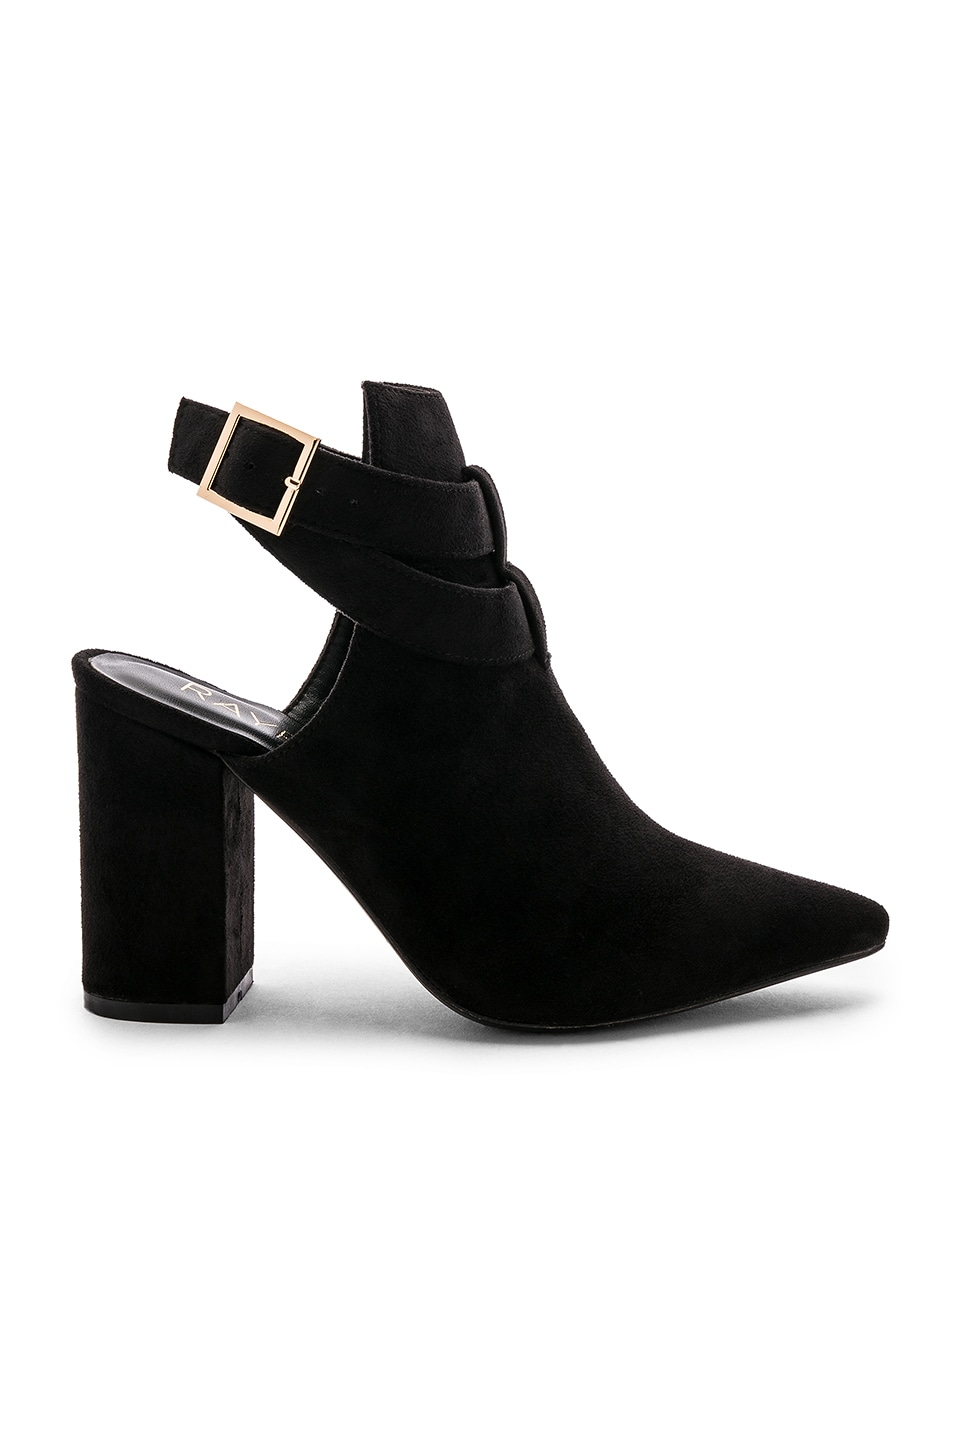 RAYE Goldfield Bootie in Black